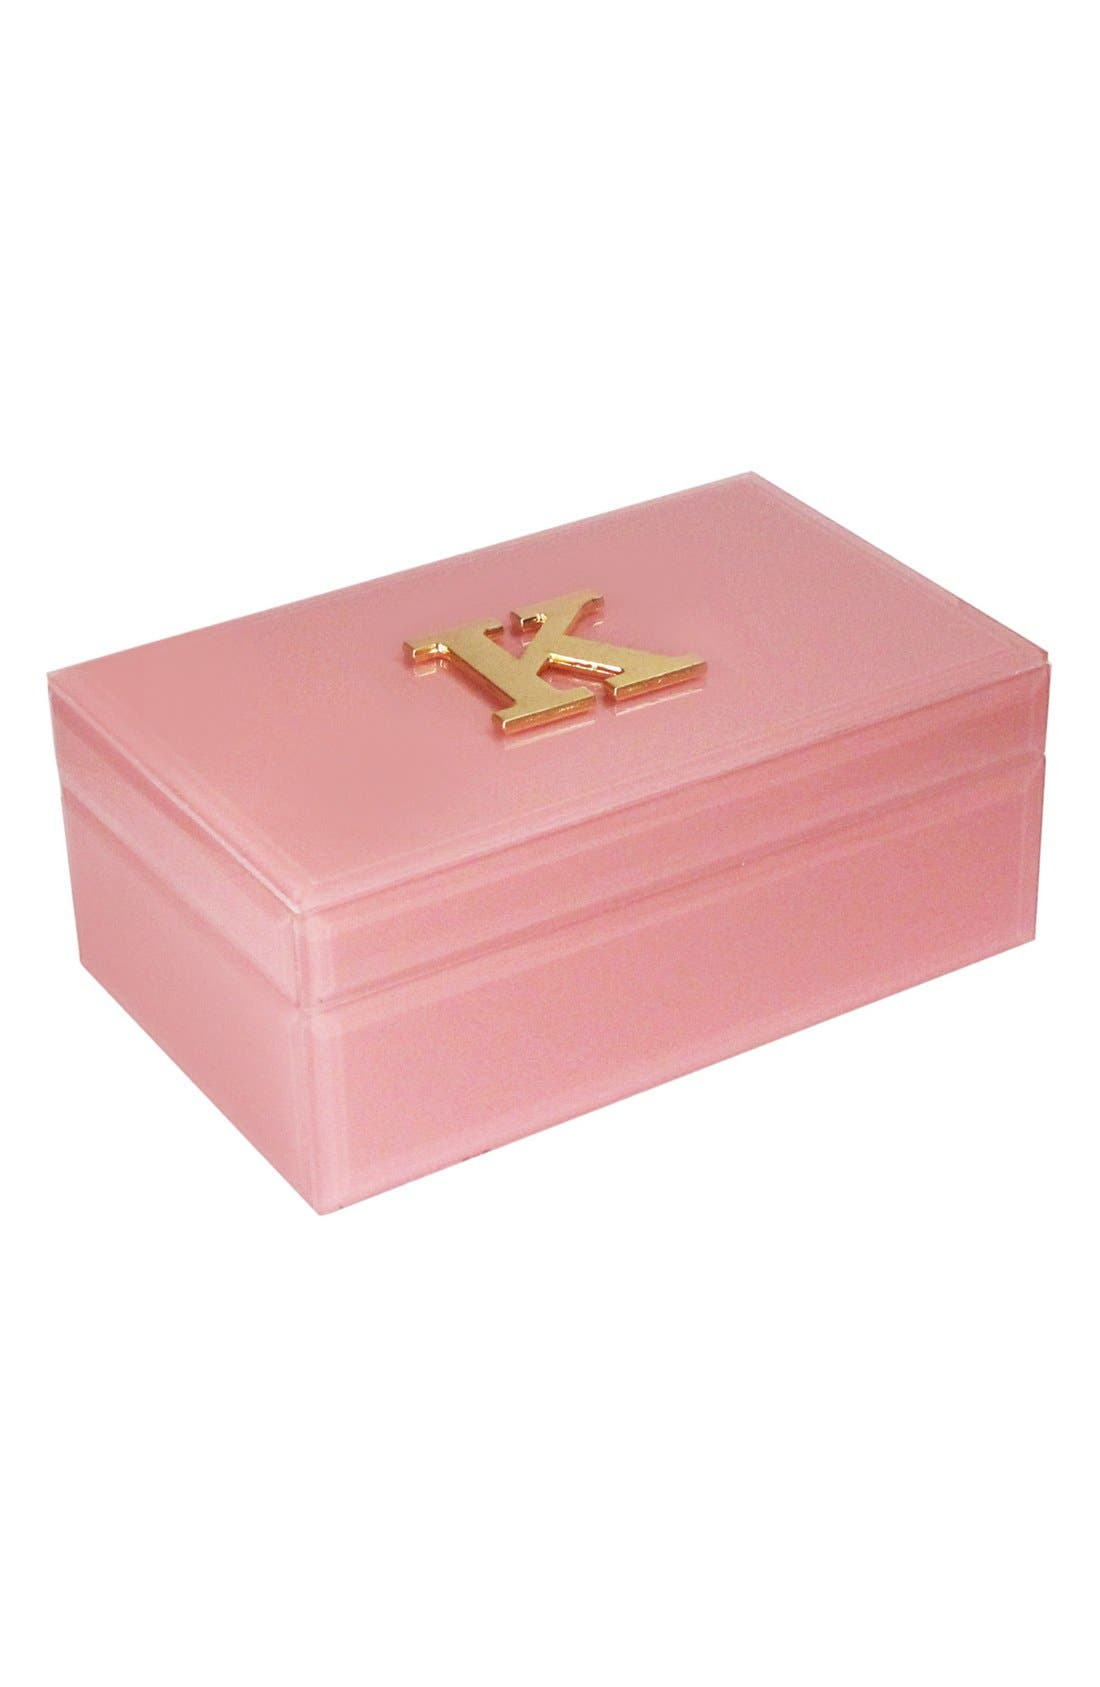 Alternate Image 1 Selected - American Atelier Monogram Jewelry Box